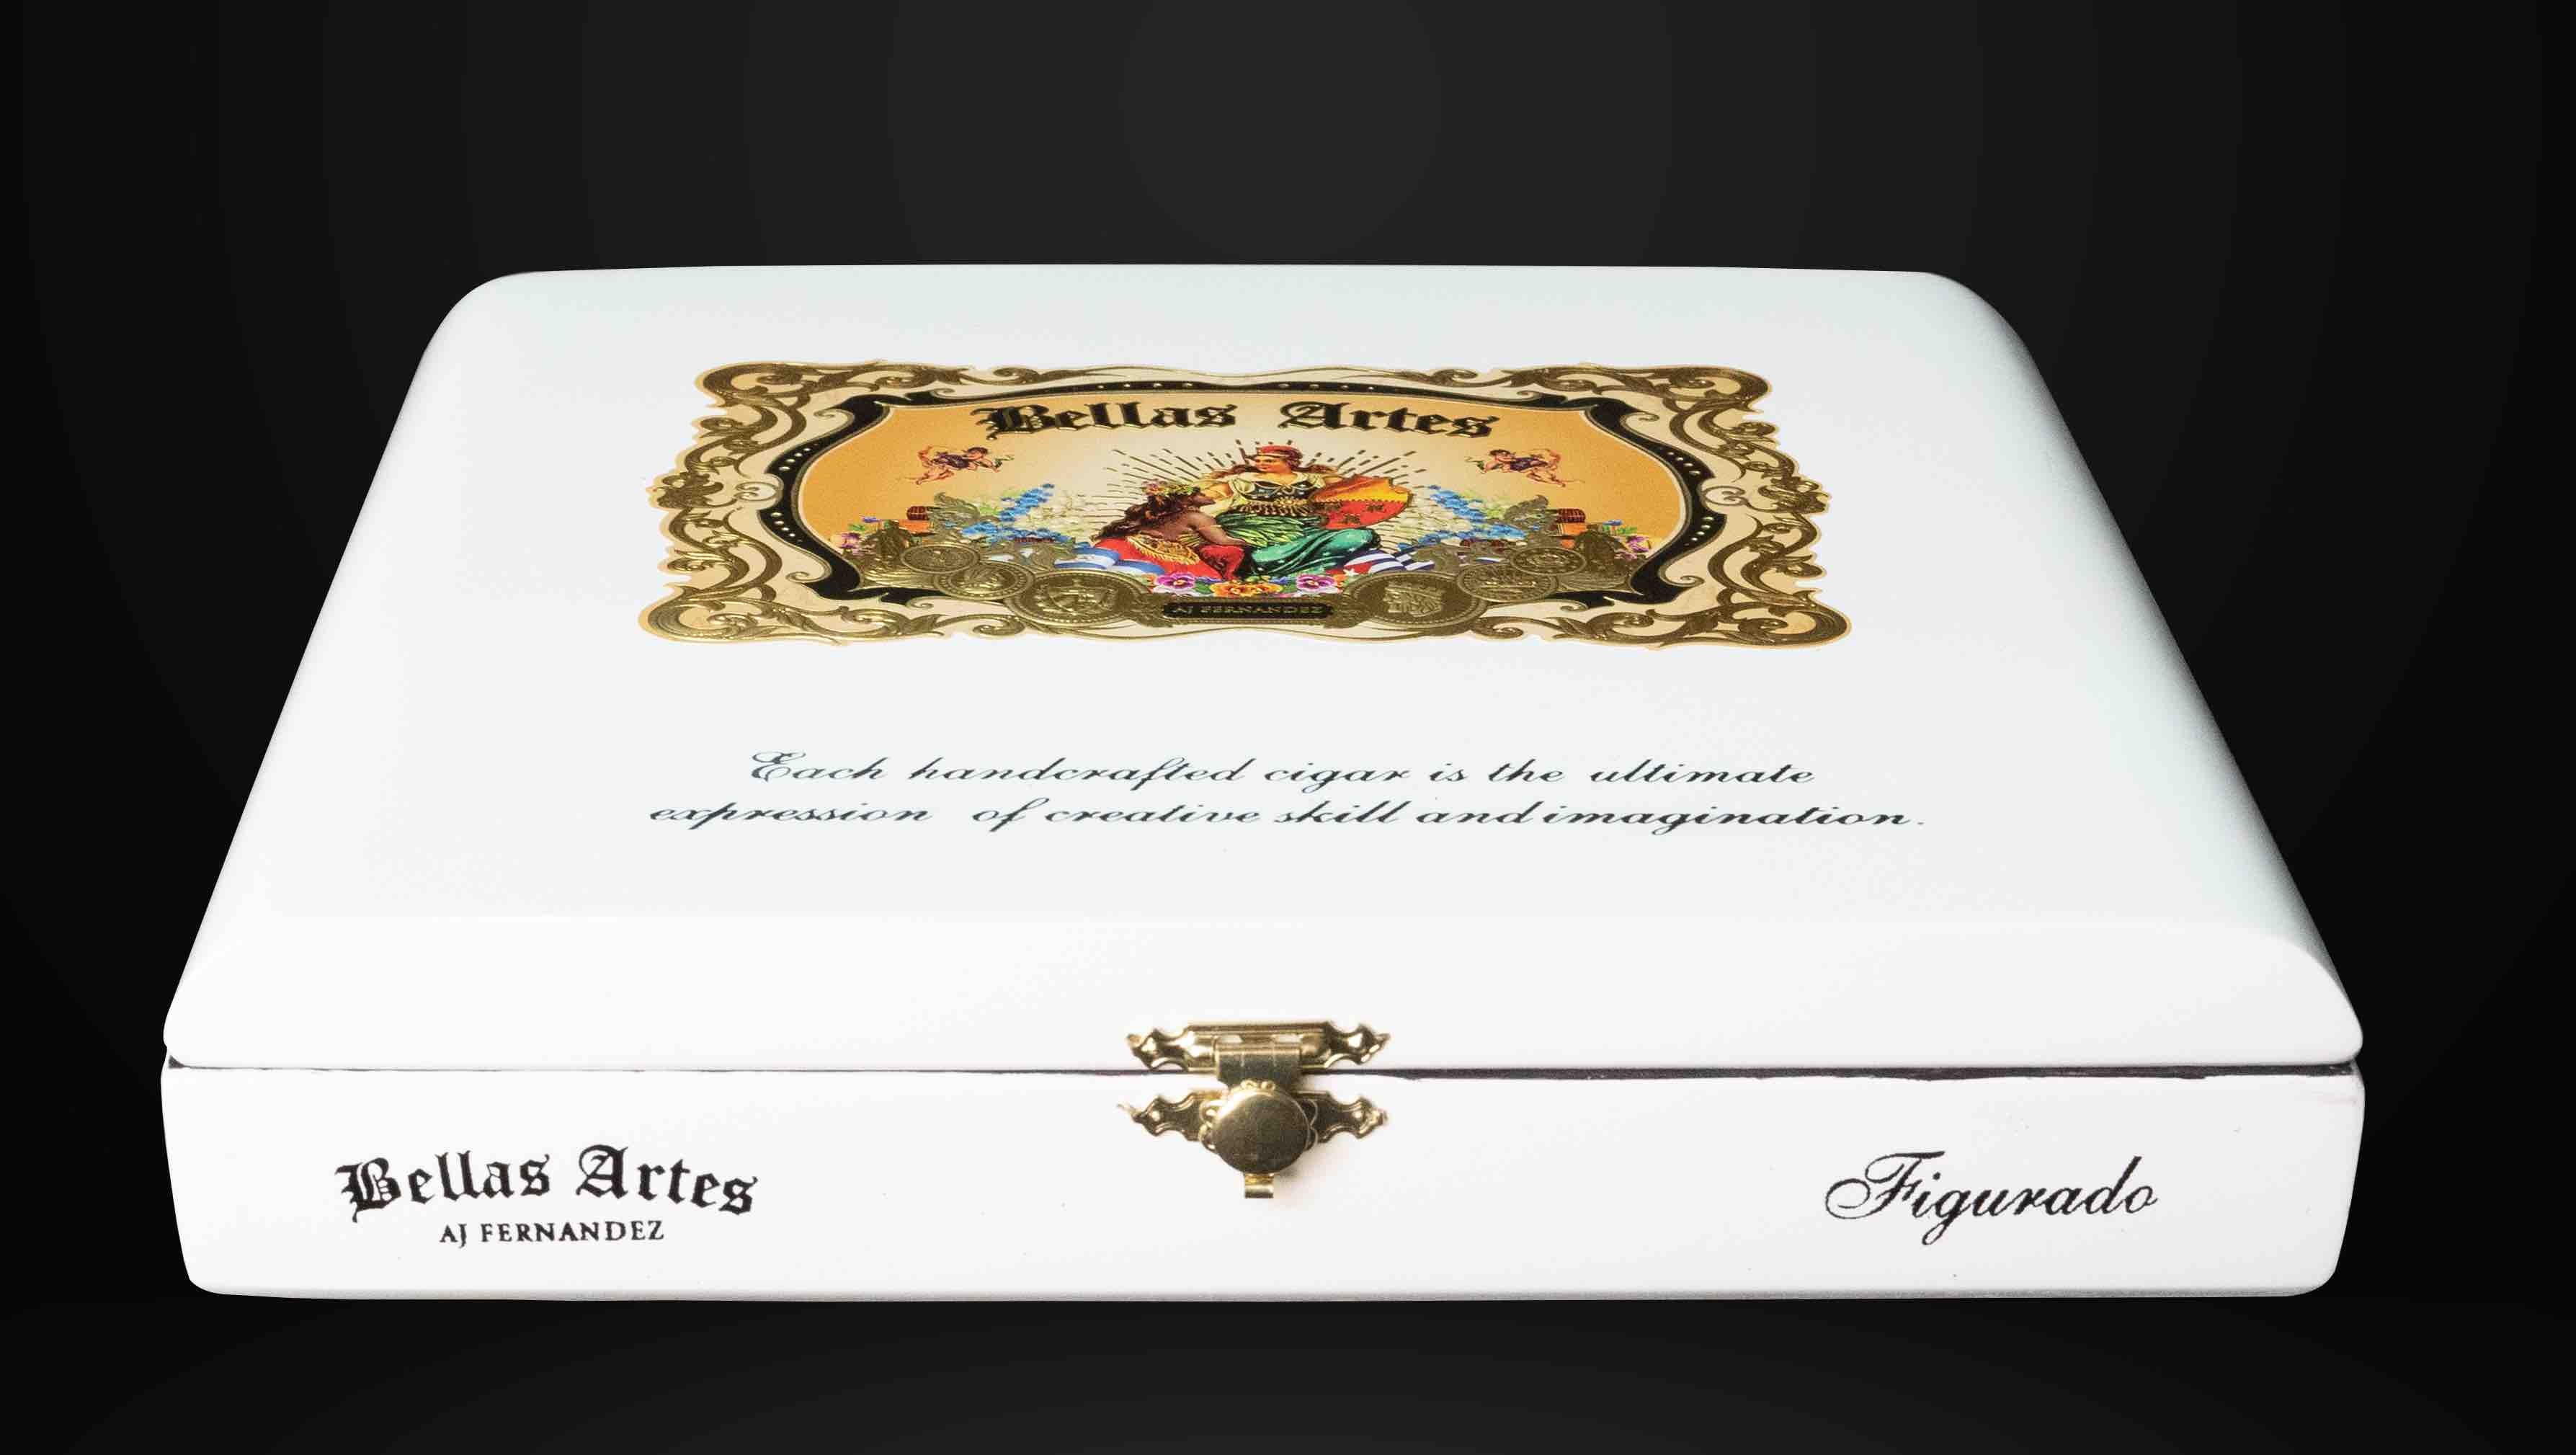 Cigar News: AJ Fernandez Belles Artes Maduro Figurado to be a Part of 2020 TAA Exclusive Series